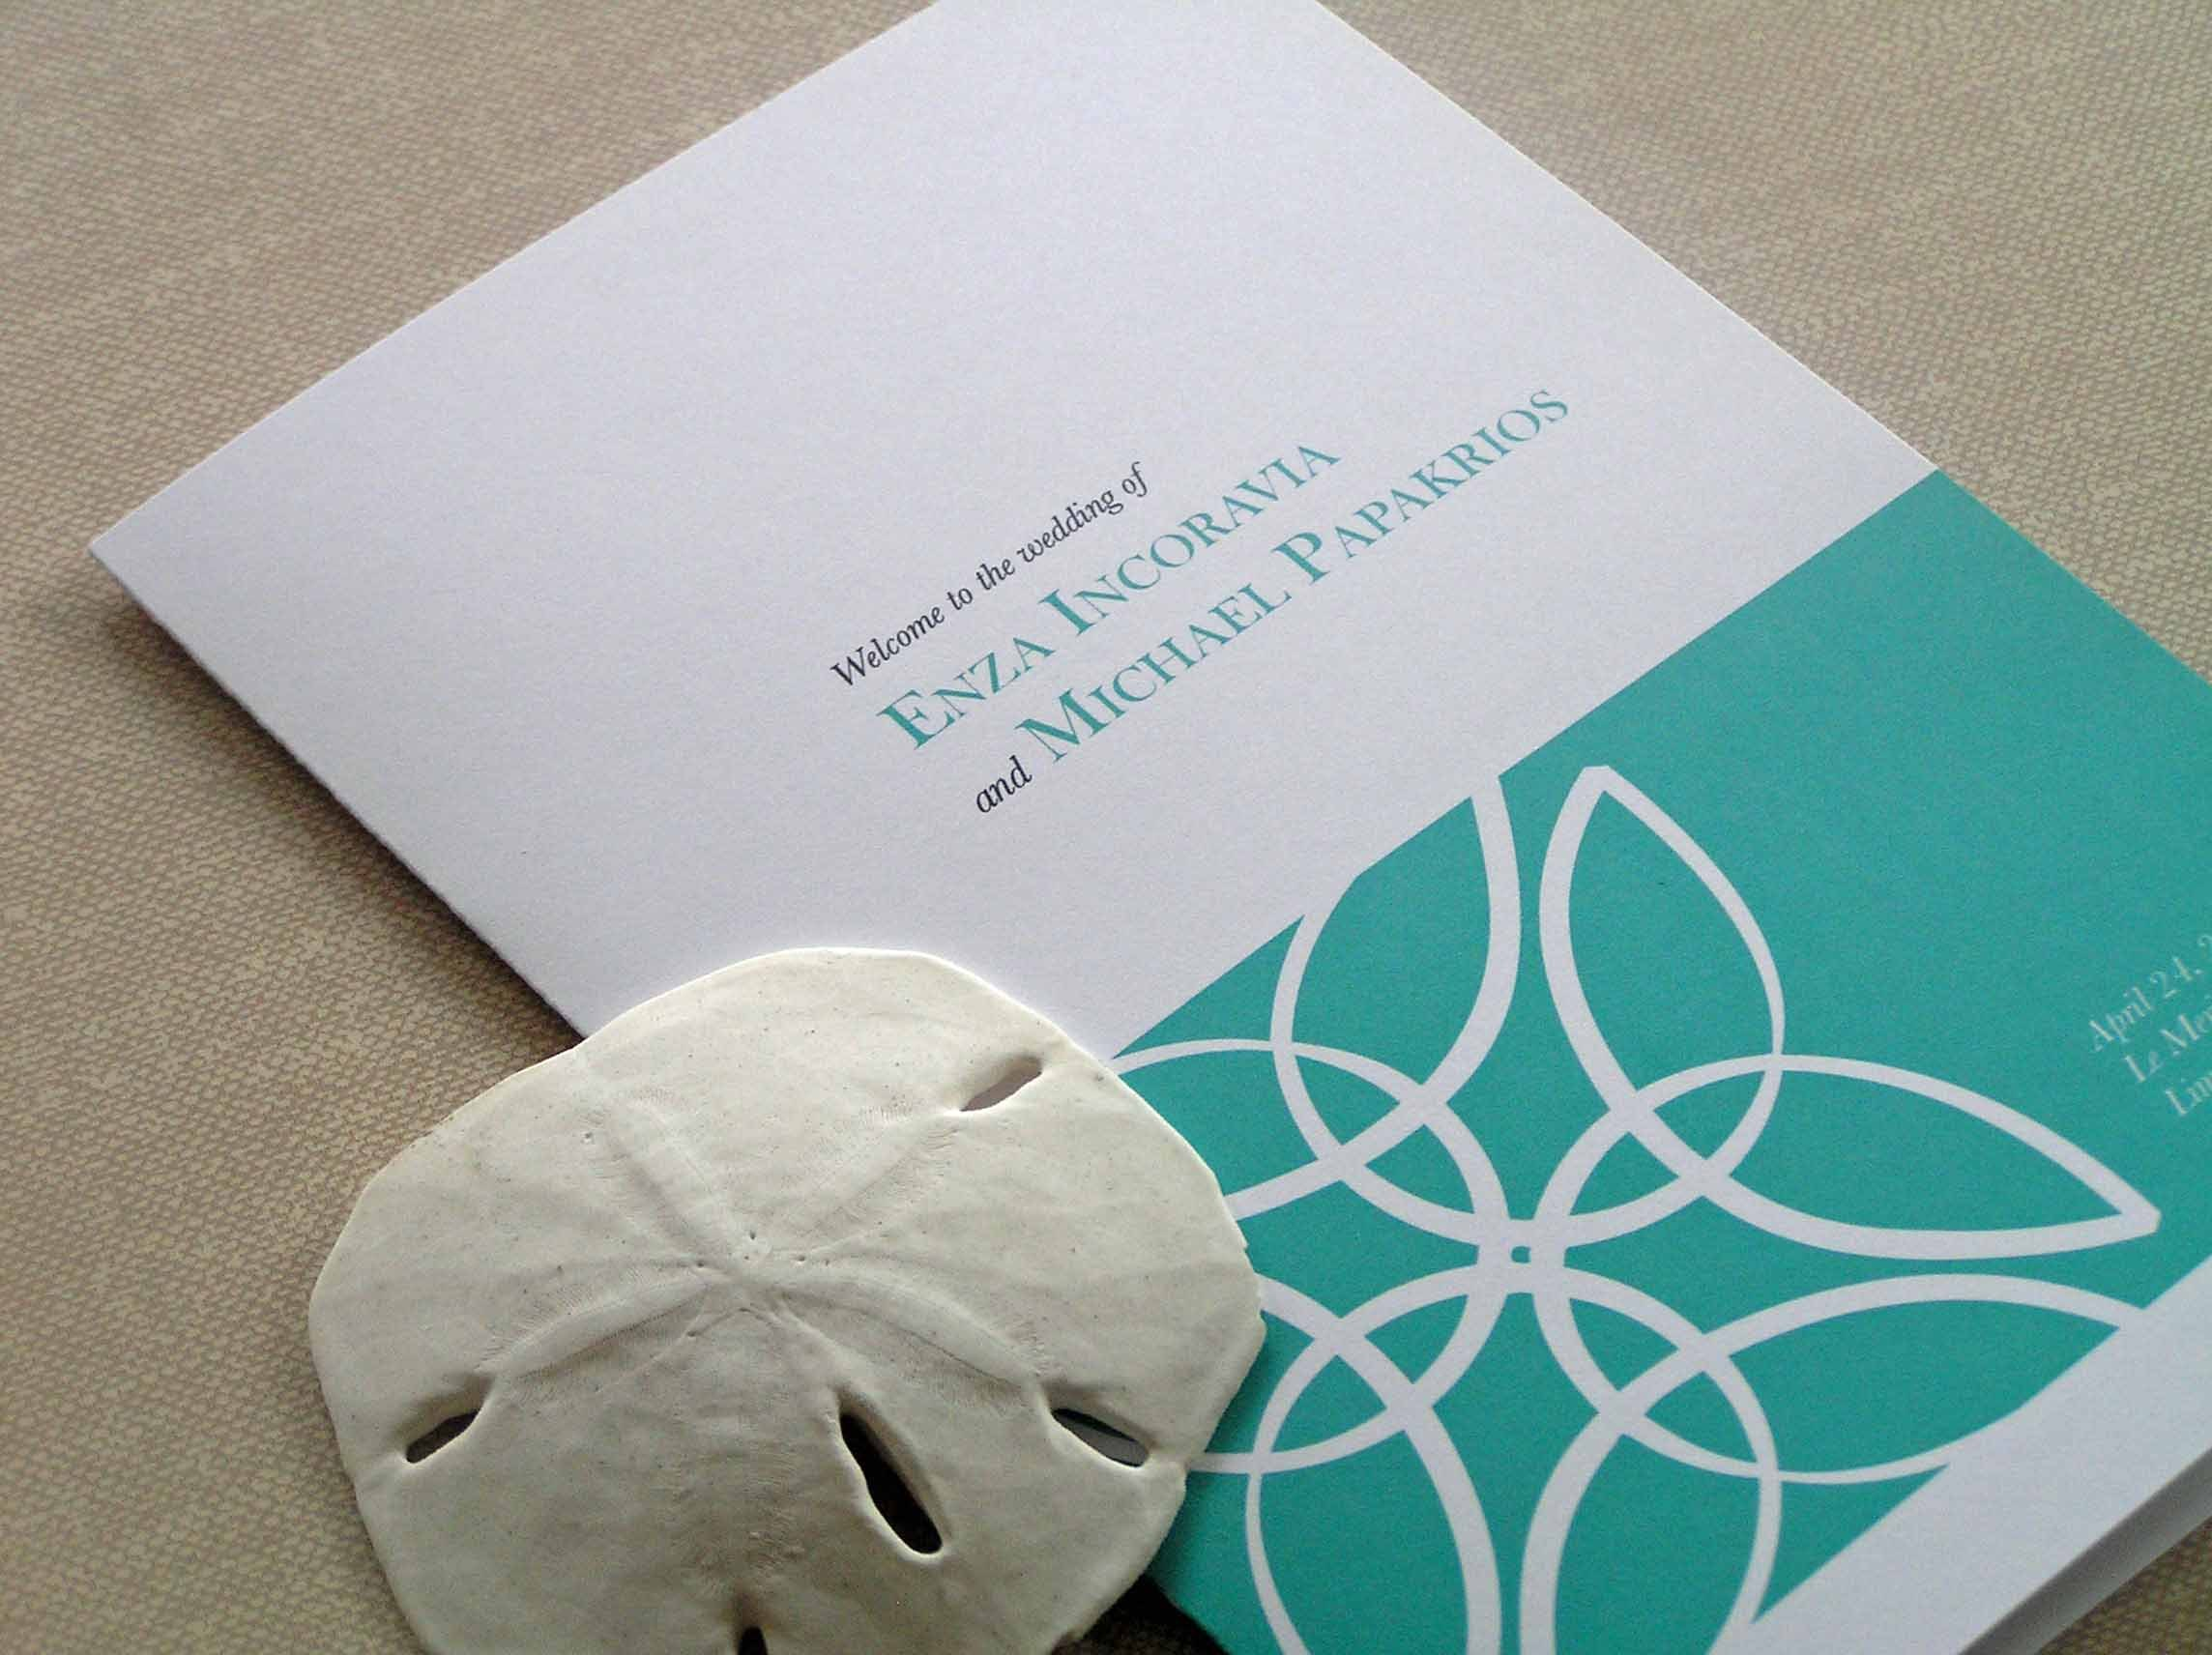 Ceremony, Inspiration, Flowers & Decor, Stationery, Destinations, white, Beach, Invitations, Ceremony Programs, Beach Wedding Flowers & Decor, Wedding, Program, Destination, Board, Sand, Dollar, Aqua, 2bsquared designs